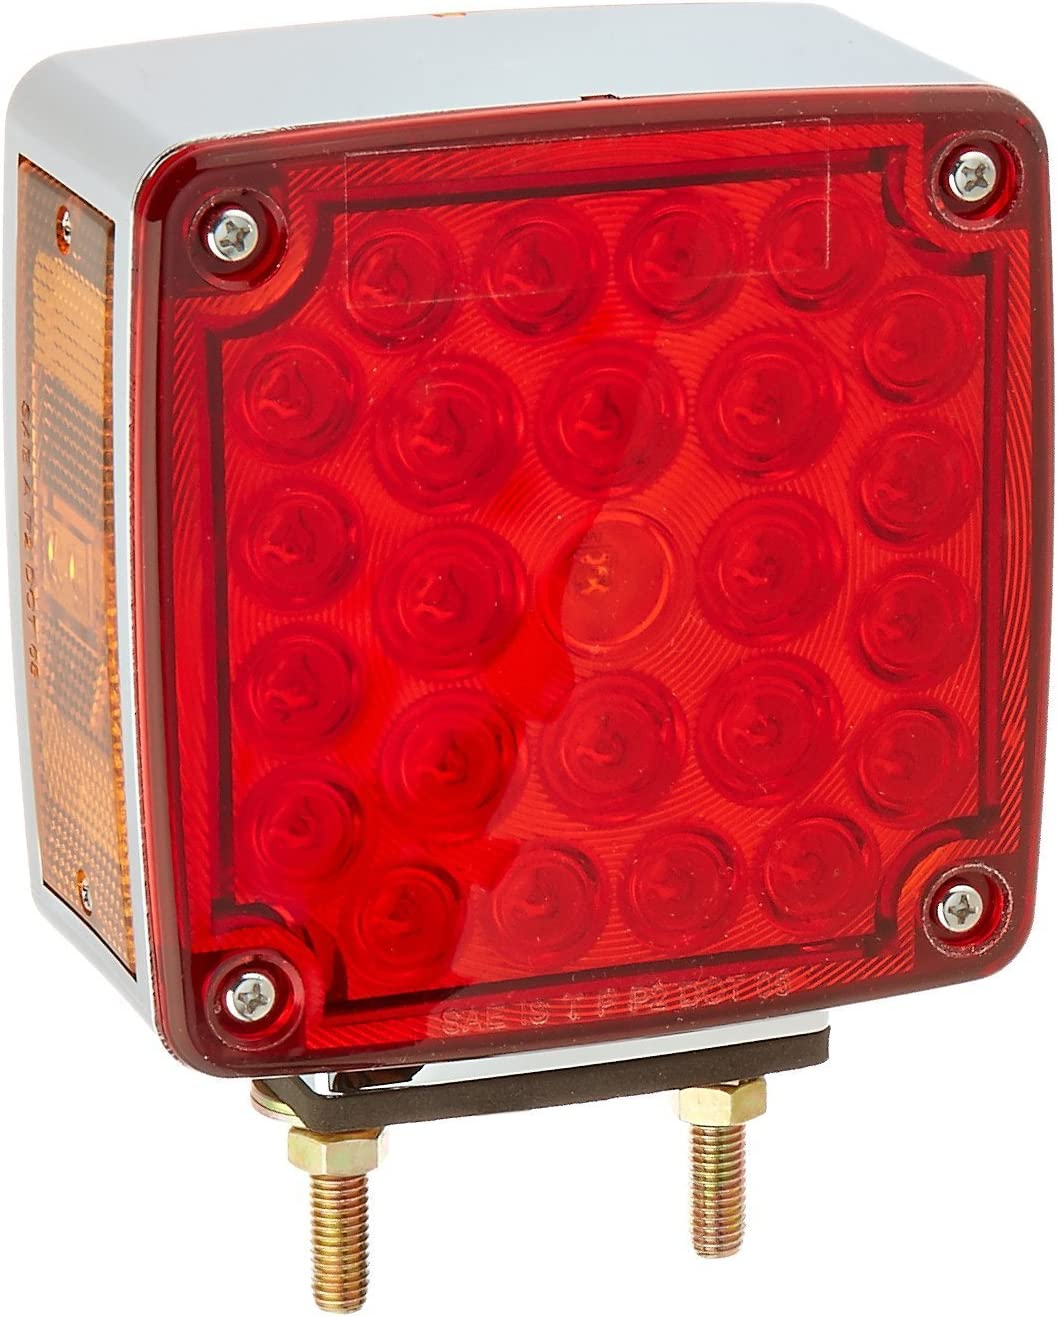 Grote G5530 Hi Count LED 2-Sided Lamp with Sidemarker 71kCtVK1irL